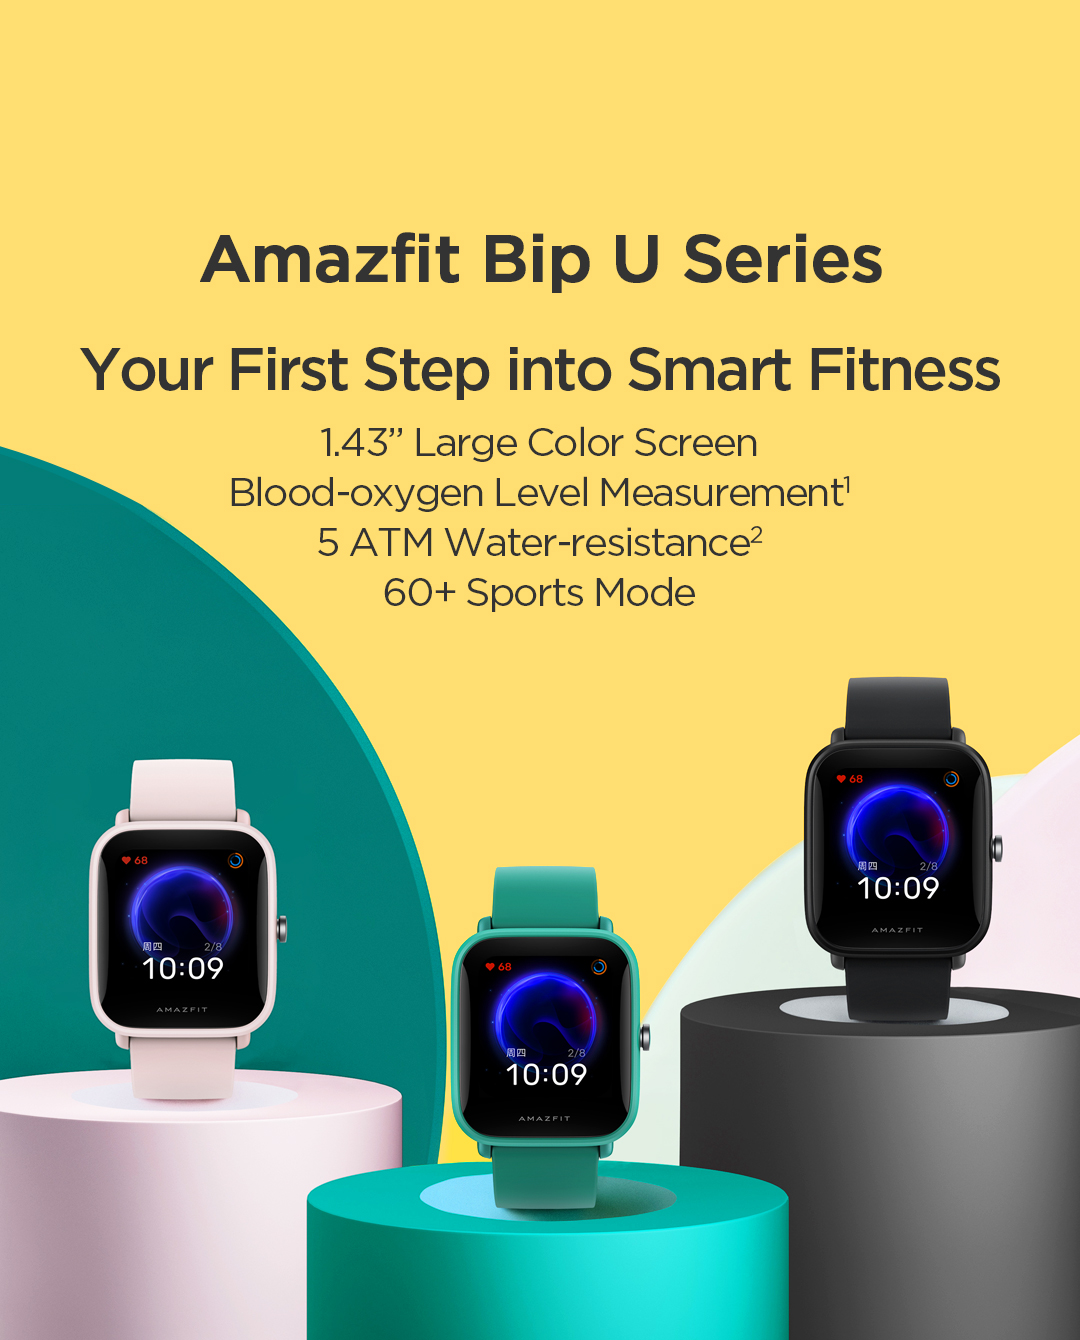 AMAZFIT Bip U Smartwatch, jam tangan pintar, bluetooth, 5ATM, smart fitness, 1.4 inch screen, sports more